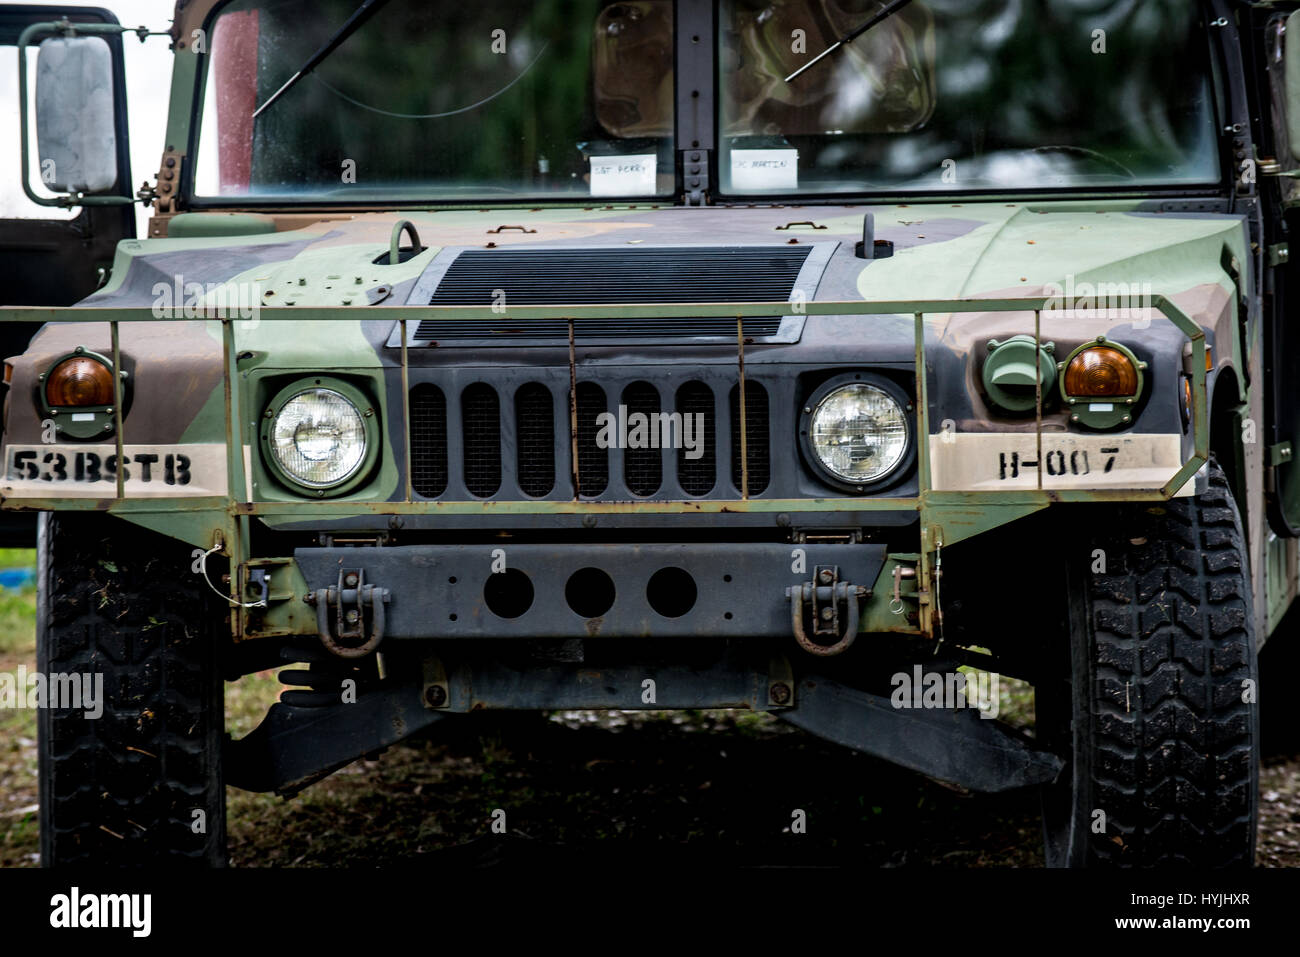 front of military hummer - Stock Image